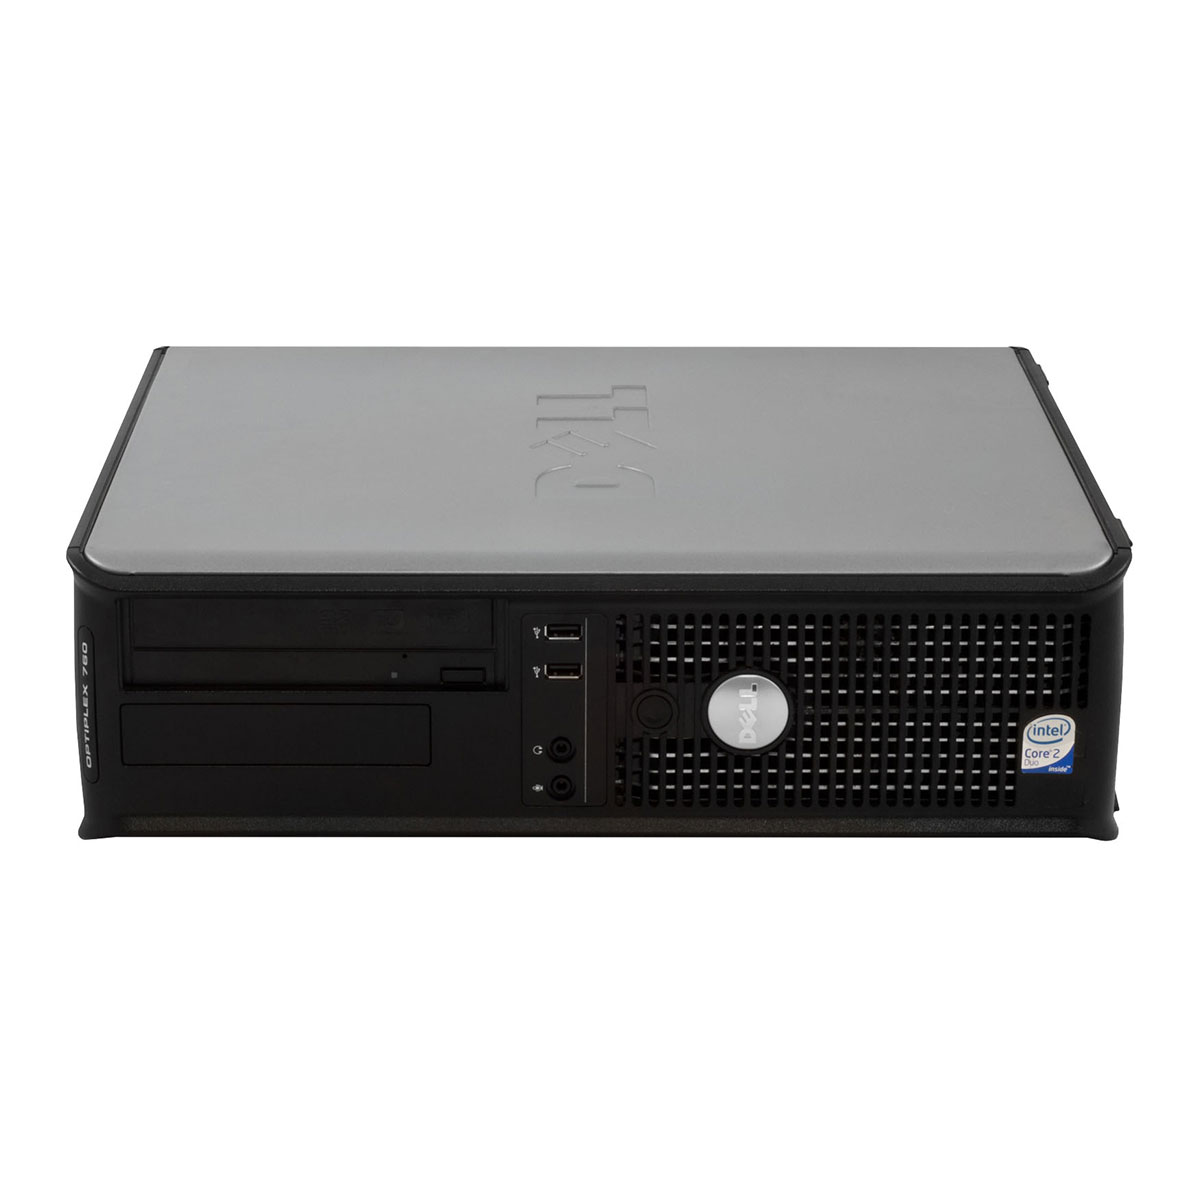 Dell Optiplex 760 Intel C2d E7500 2.93 Ghz 4 Gb Ddr 2 250 Gb Hdd Dvd-rw Desktop